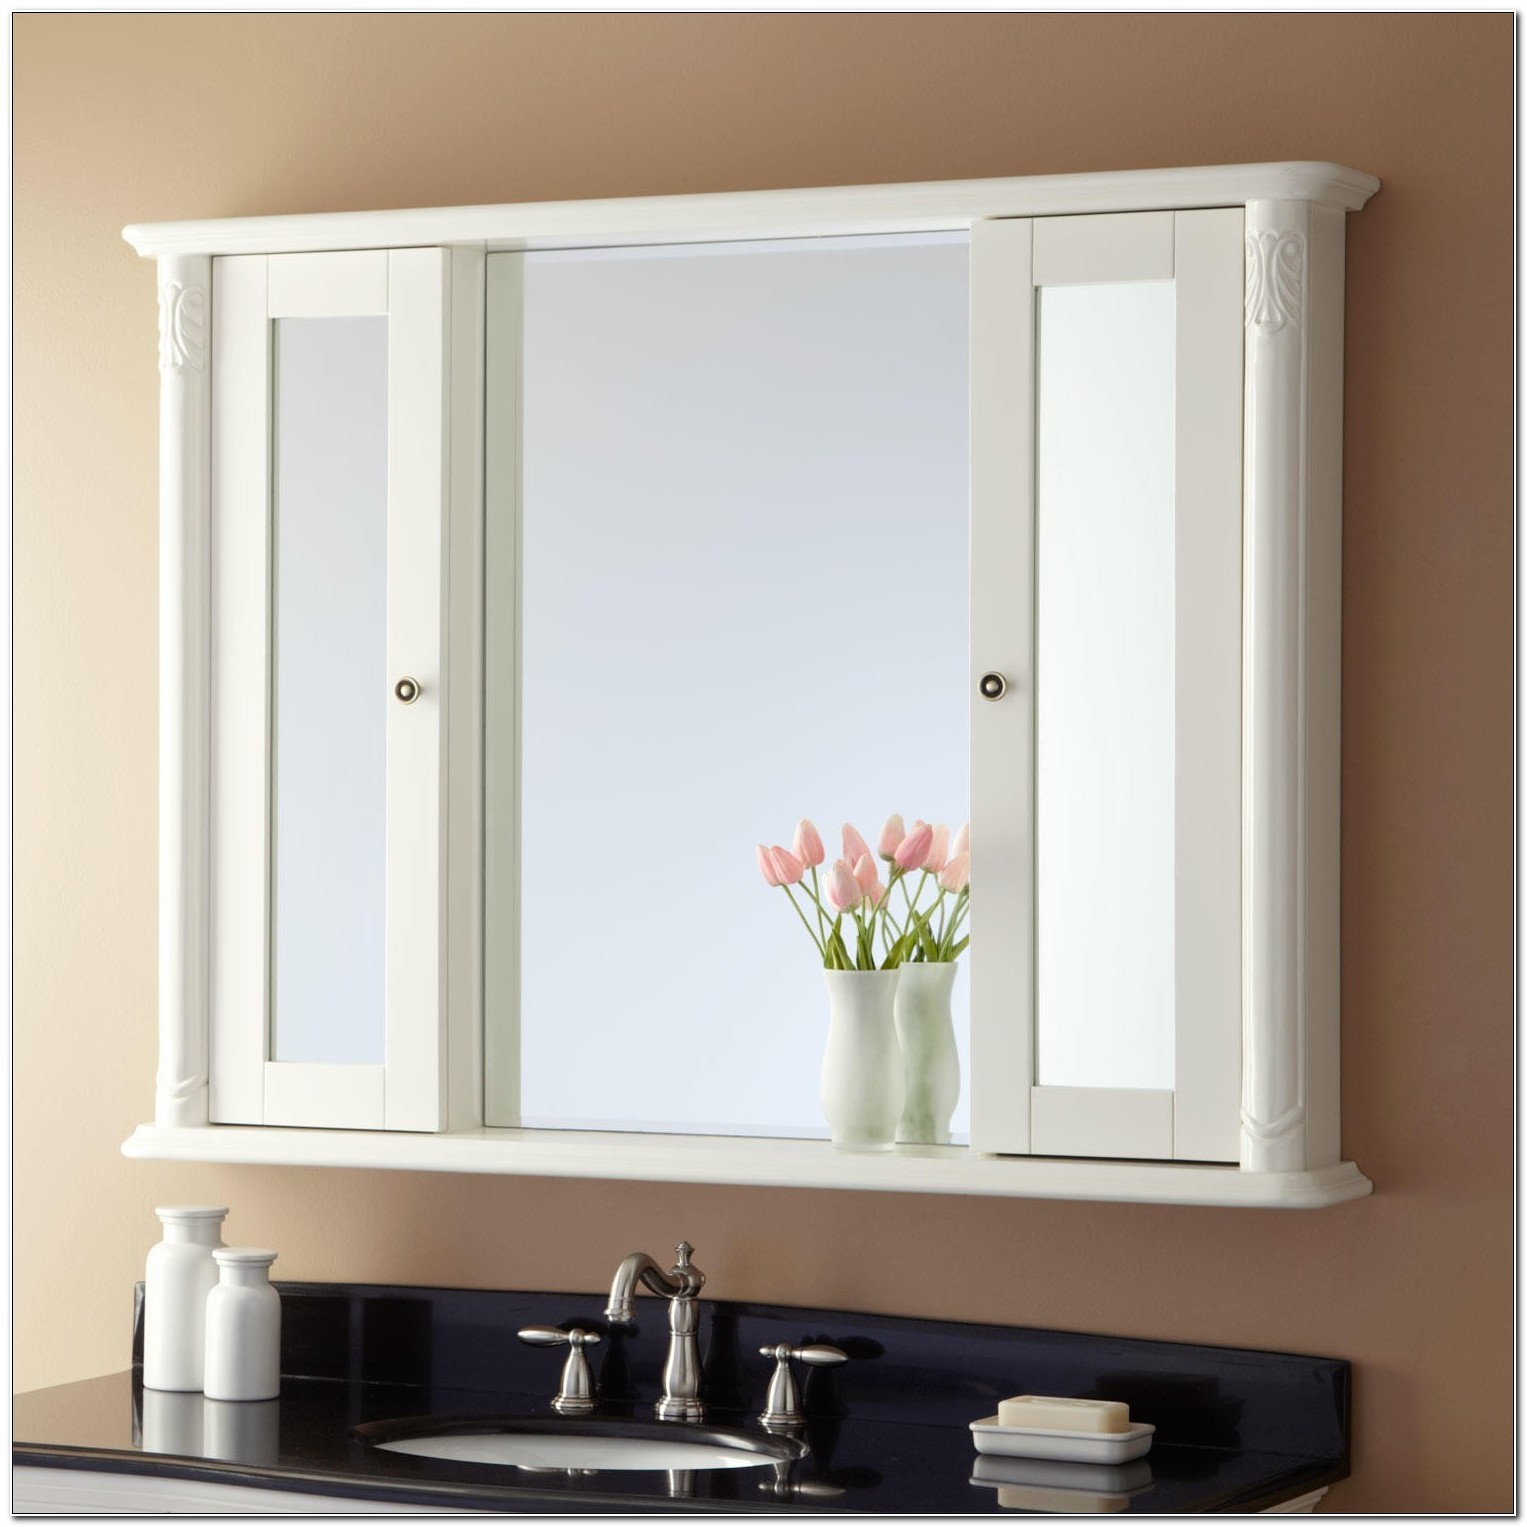 Lighted Bathroom Medicine Cabinet Mirror